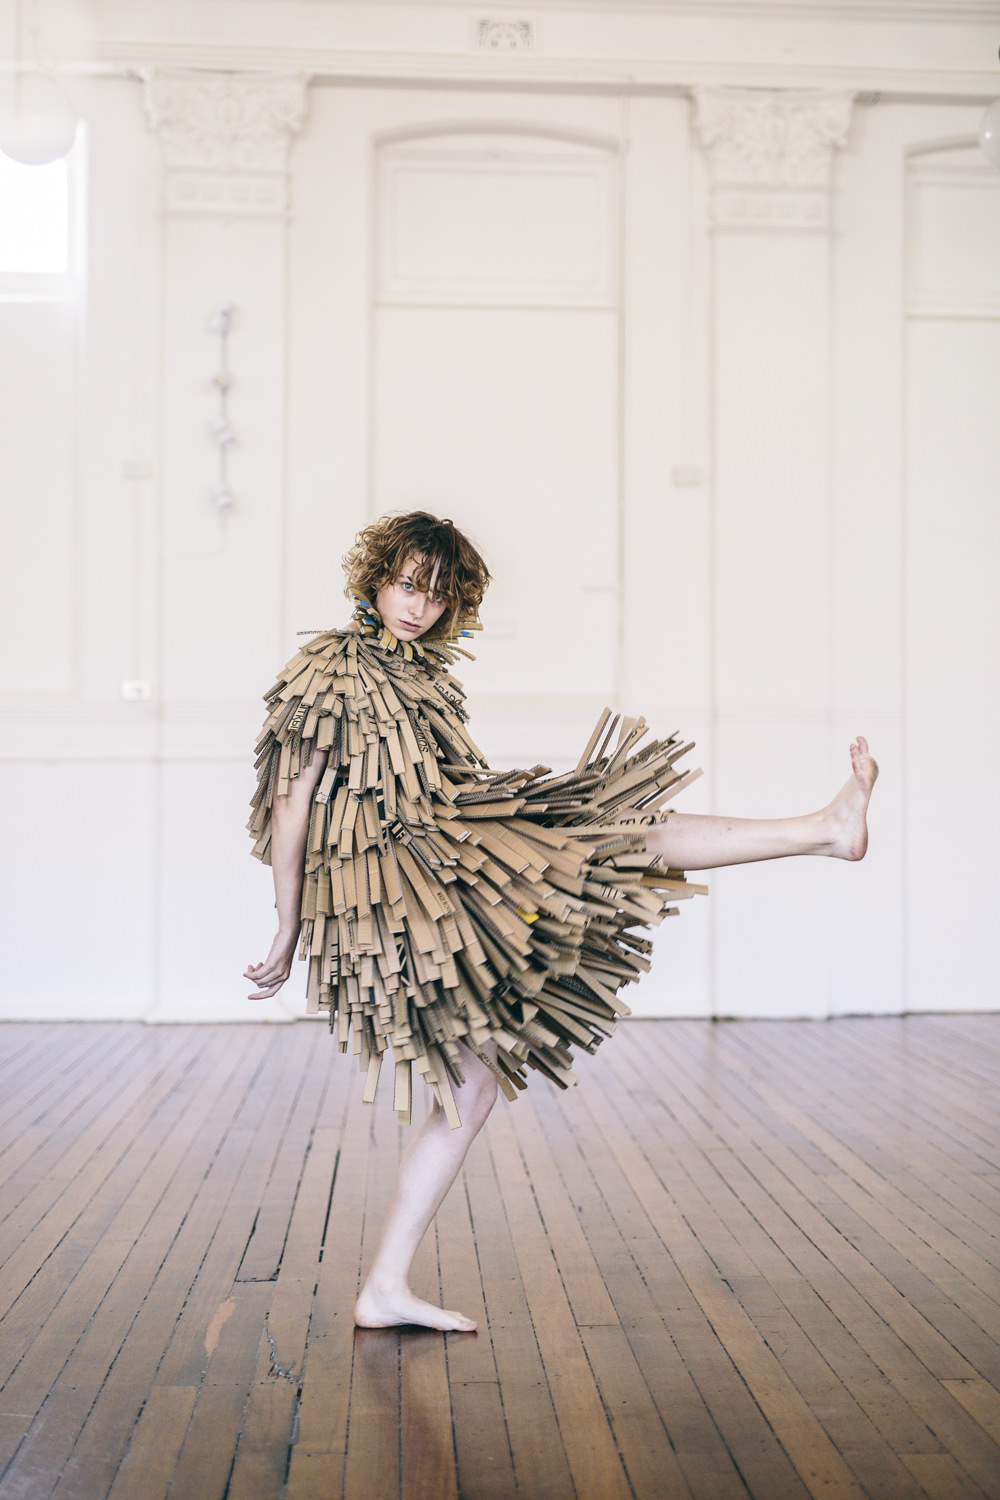 Cardboard Fringe Coat, repurposed cardboard hand stitched to repurposed vest.